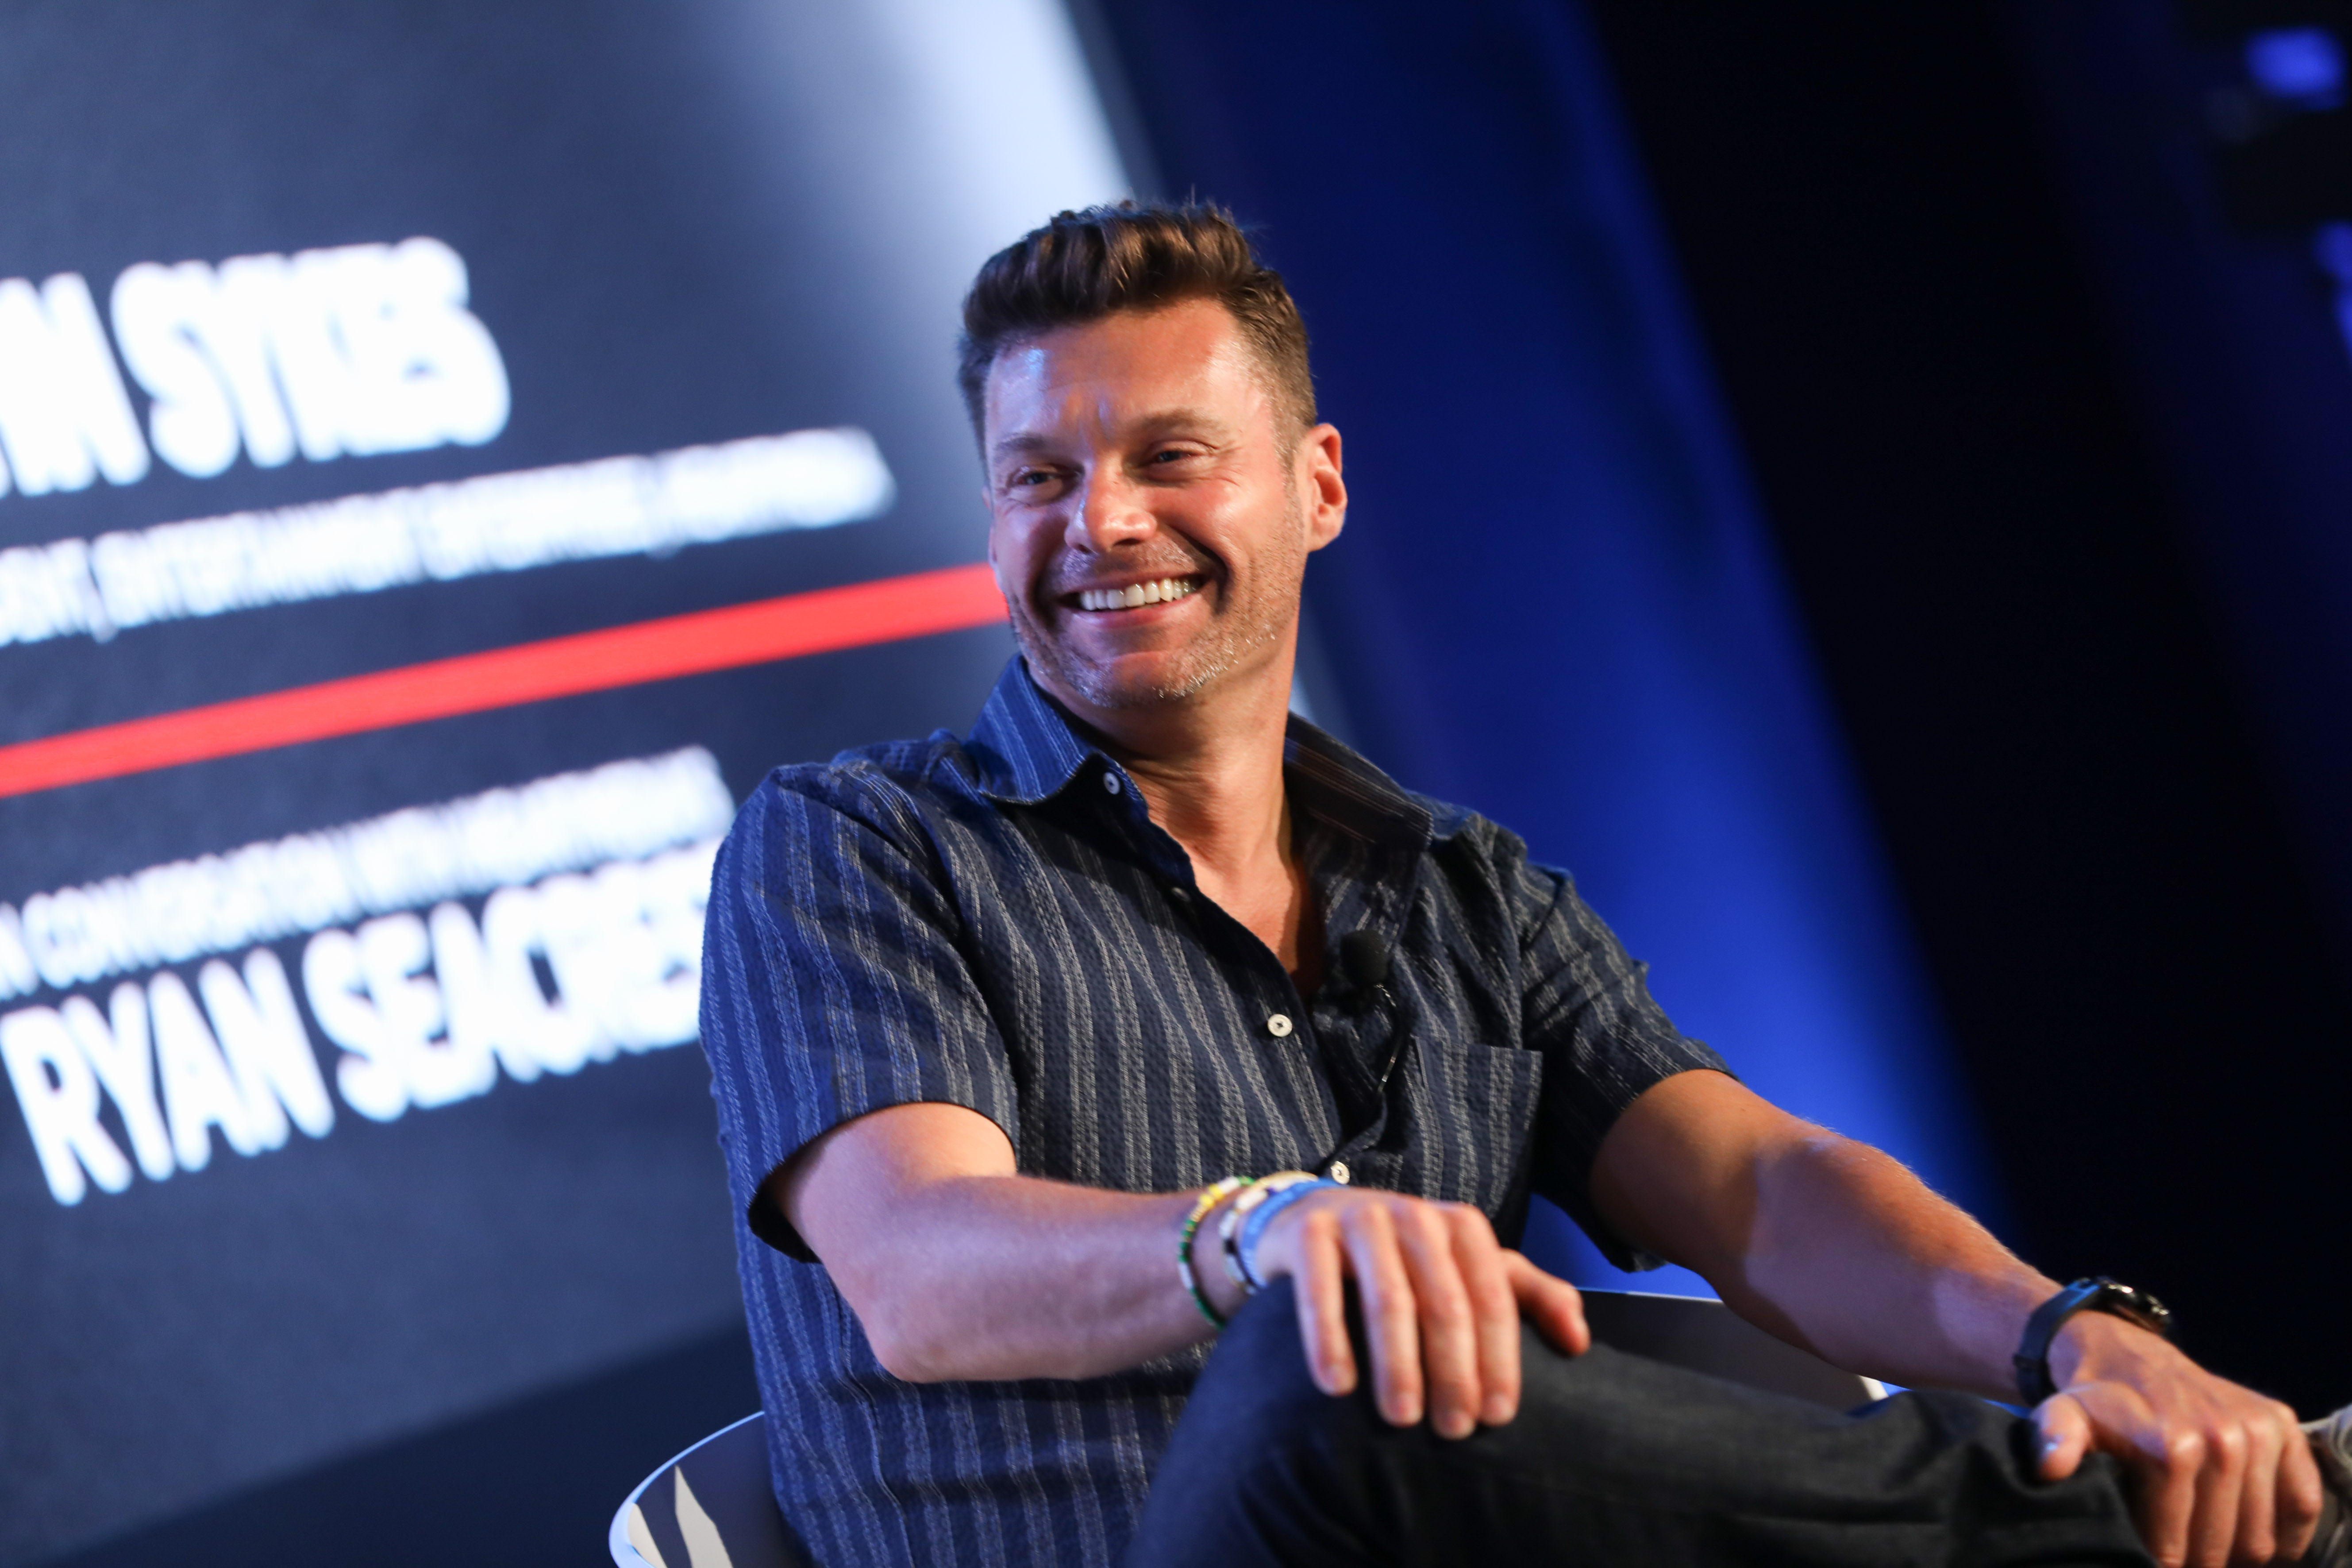 Ryan Seacrest attends an iHeartMedia fireside chat on the Inspiration stage at Lumiere Theater, Palais 2 during the Cannes Lions Festival on June 21, 2017 in Cannes, France.